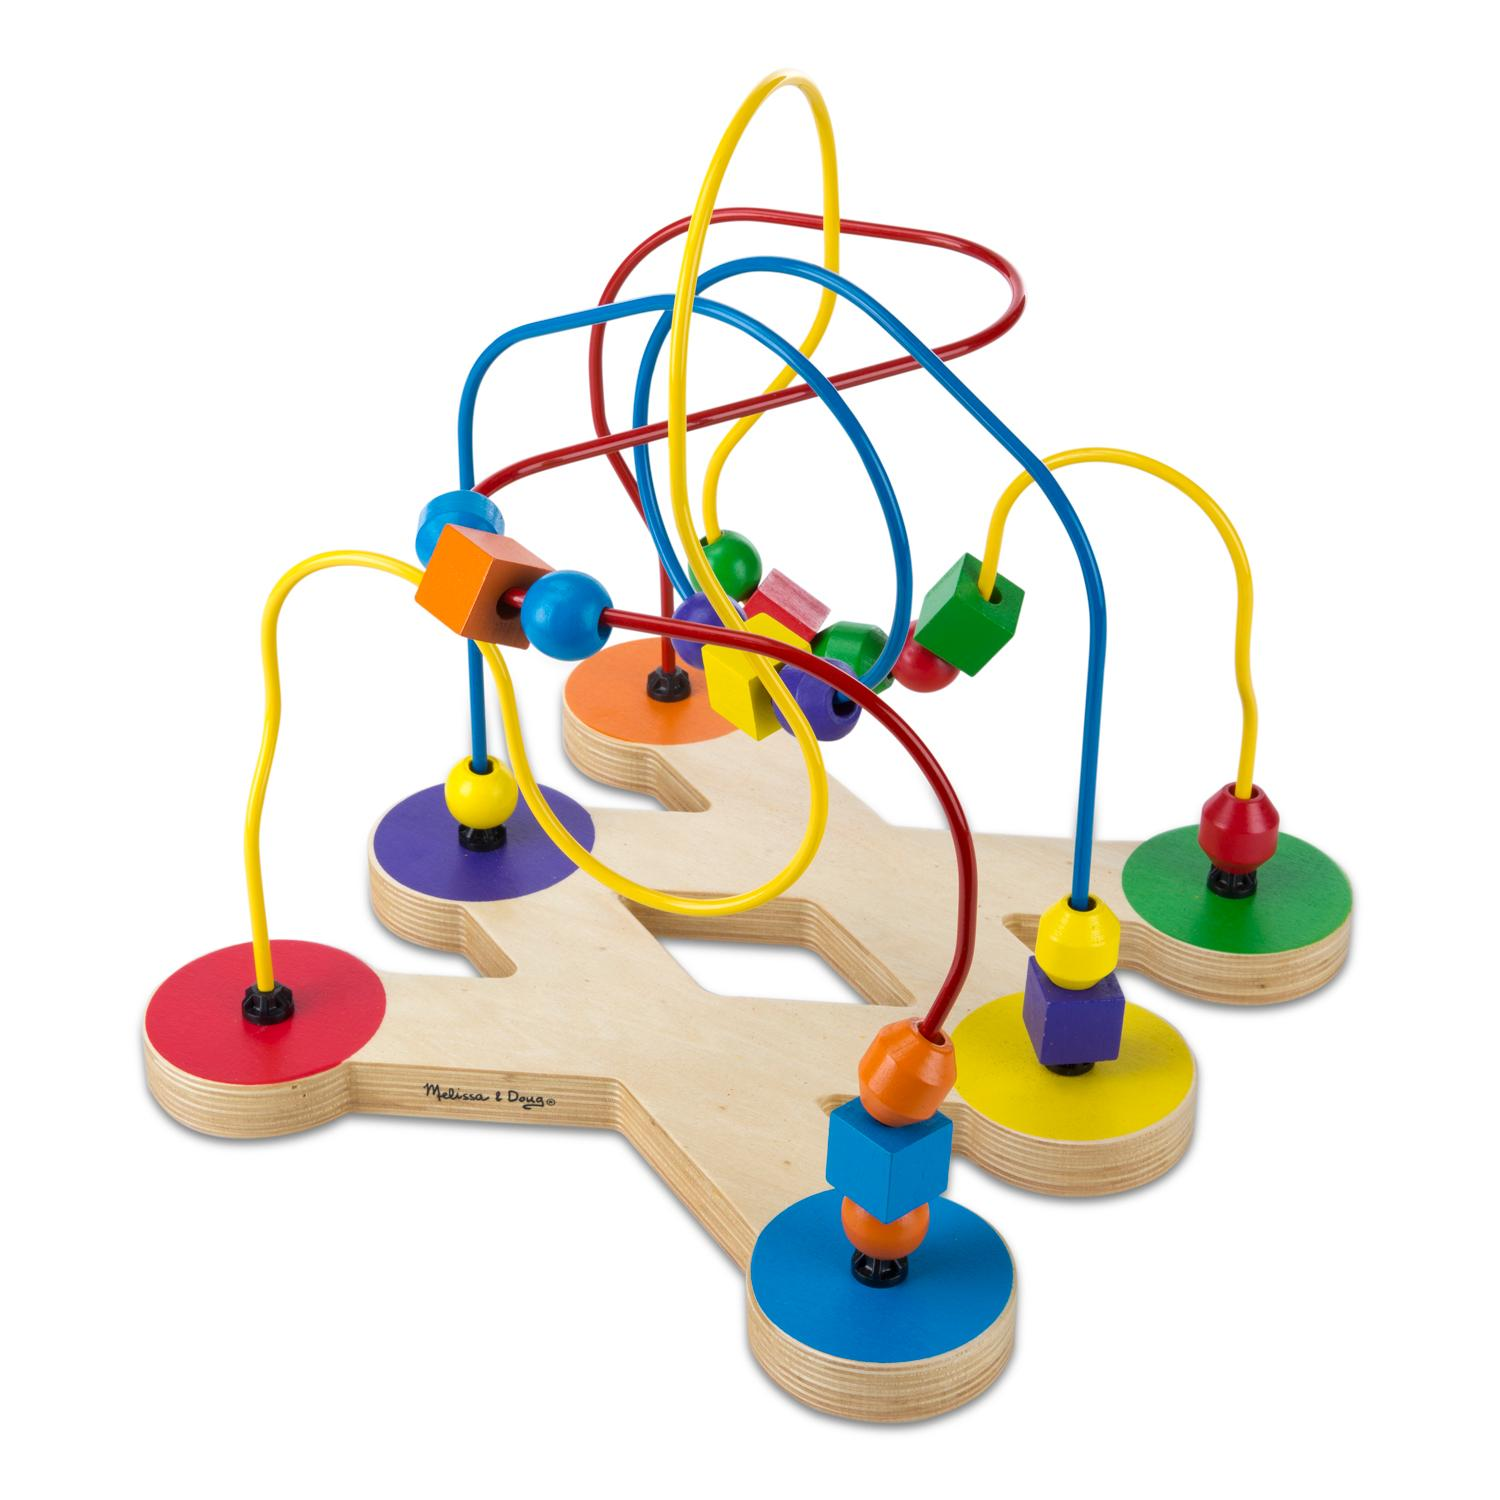 Toddler Educational Toys : Amazon melissa doug classic bead maze wooden